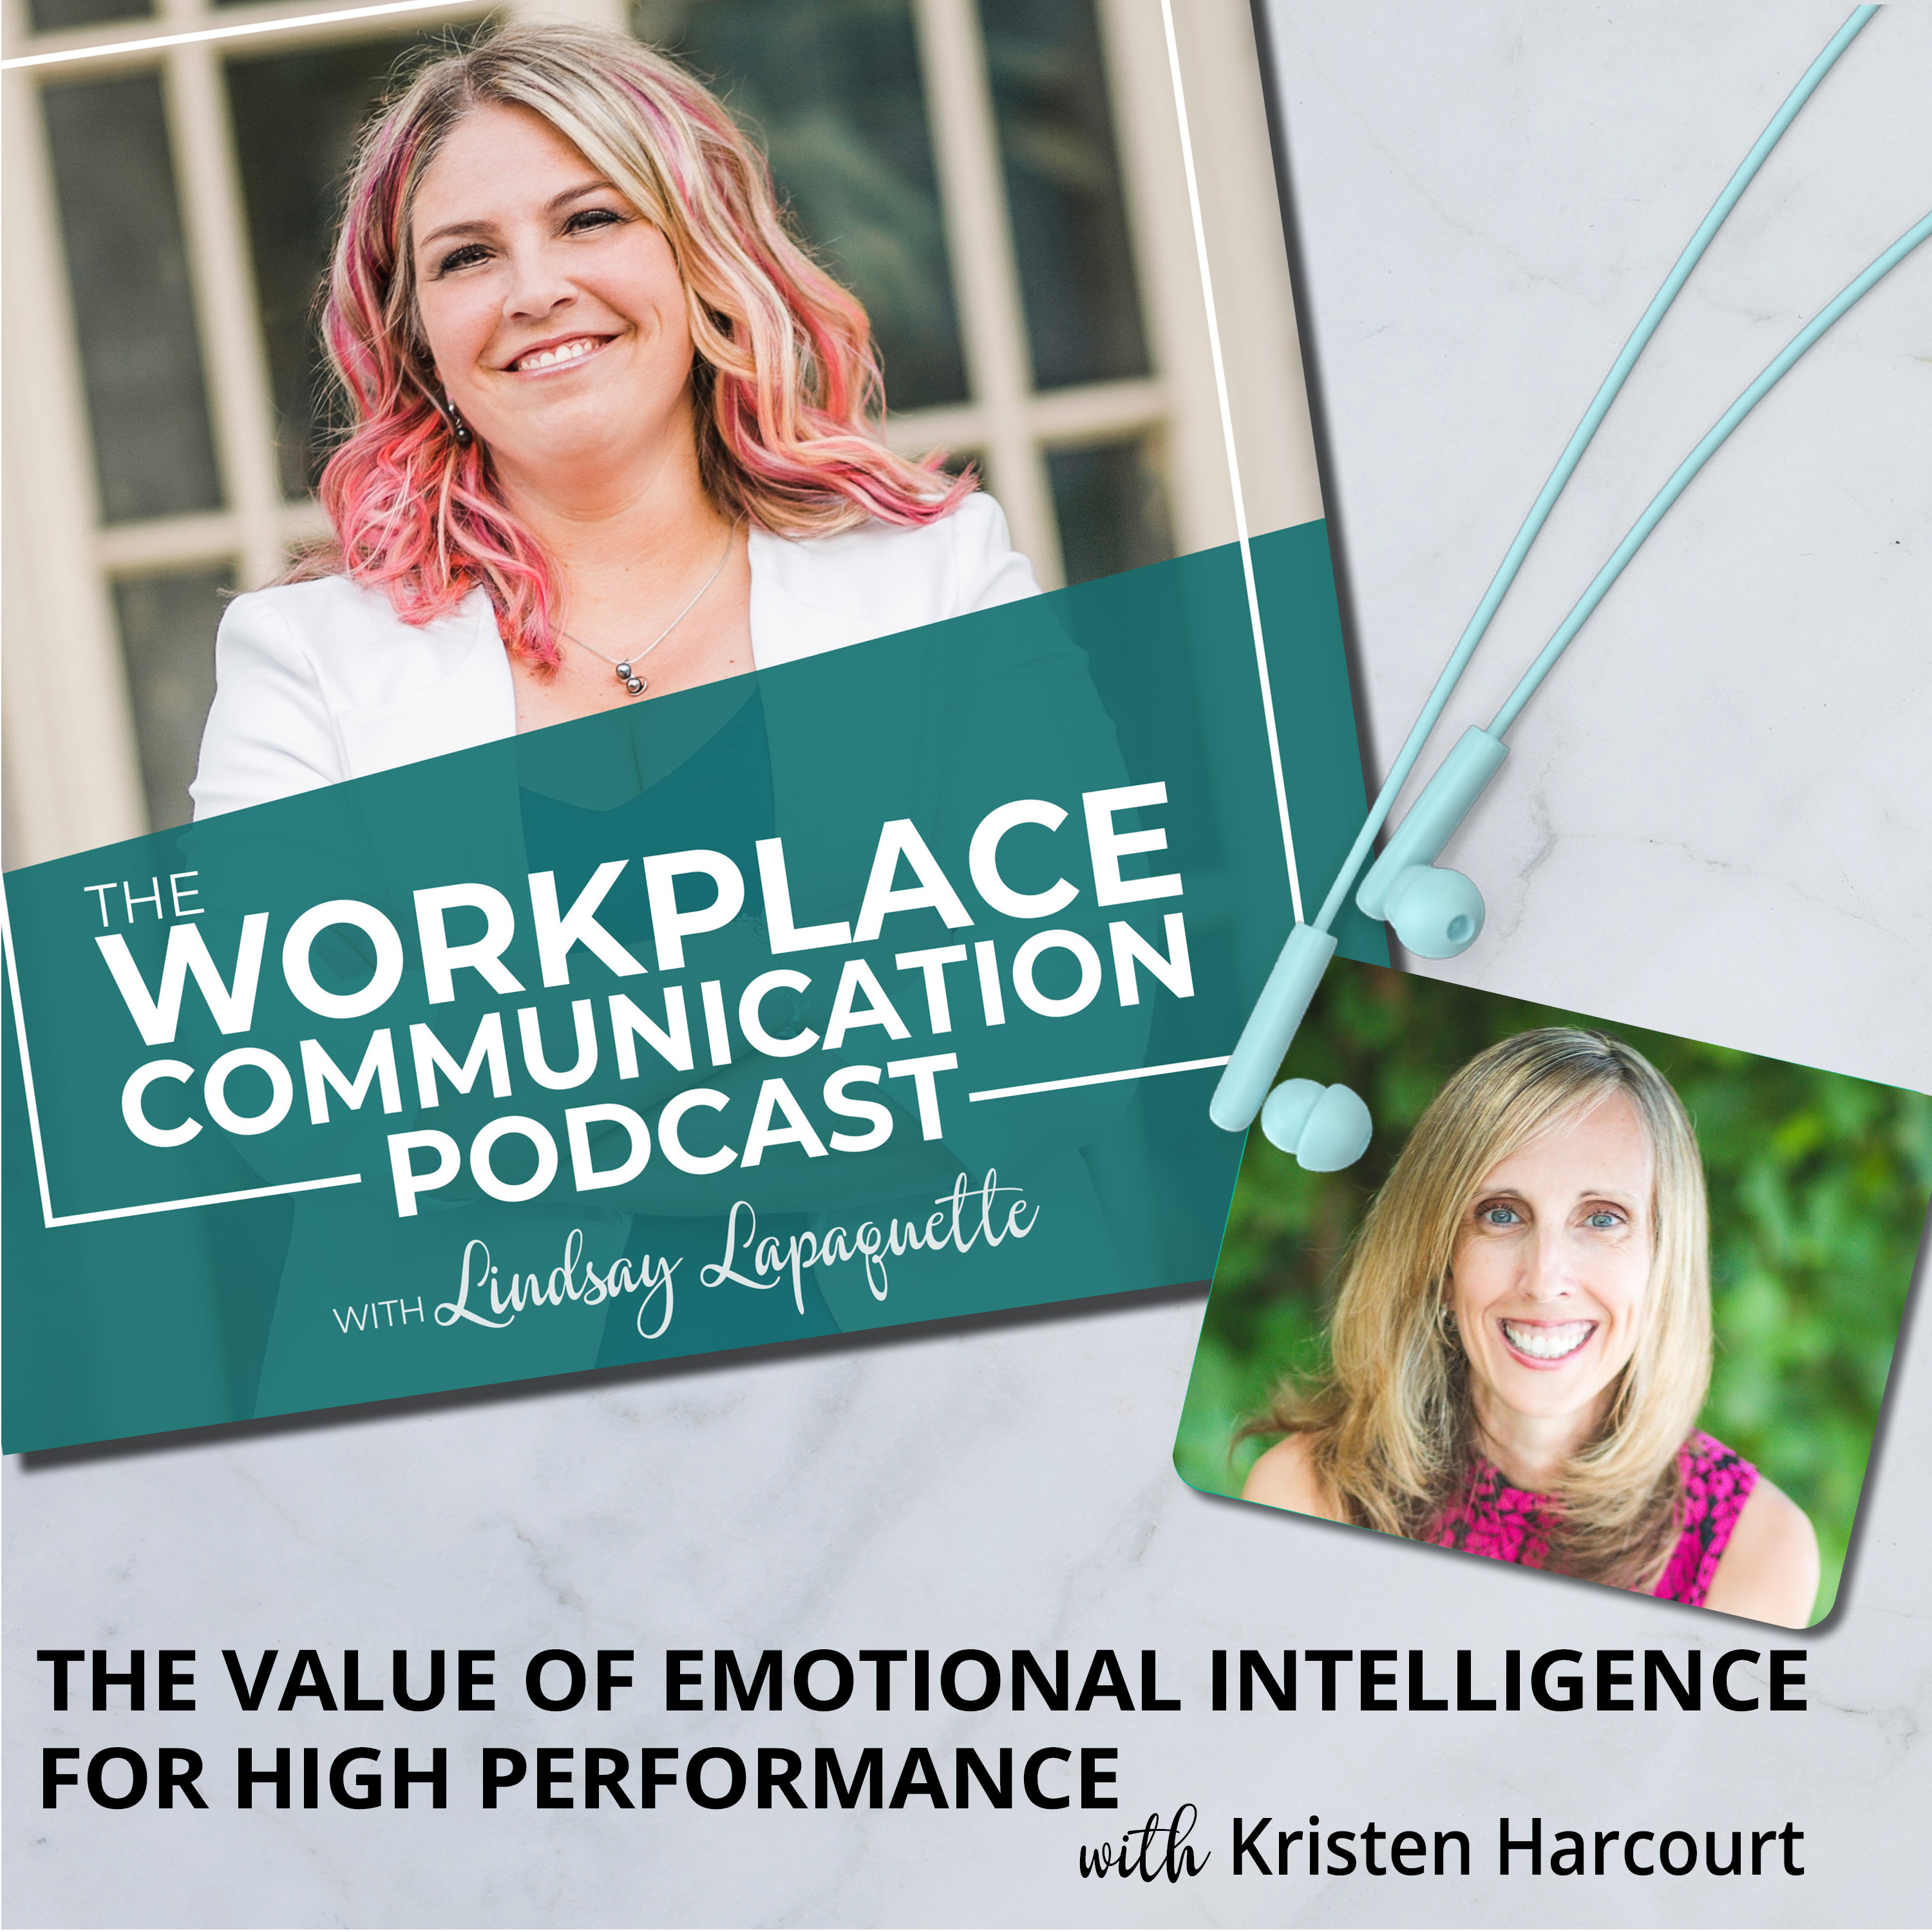 The Workplace Communication Podcast